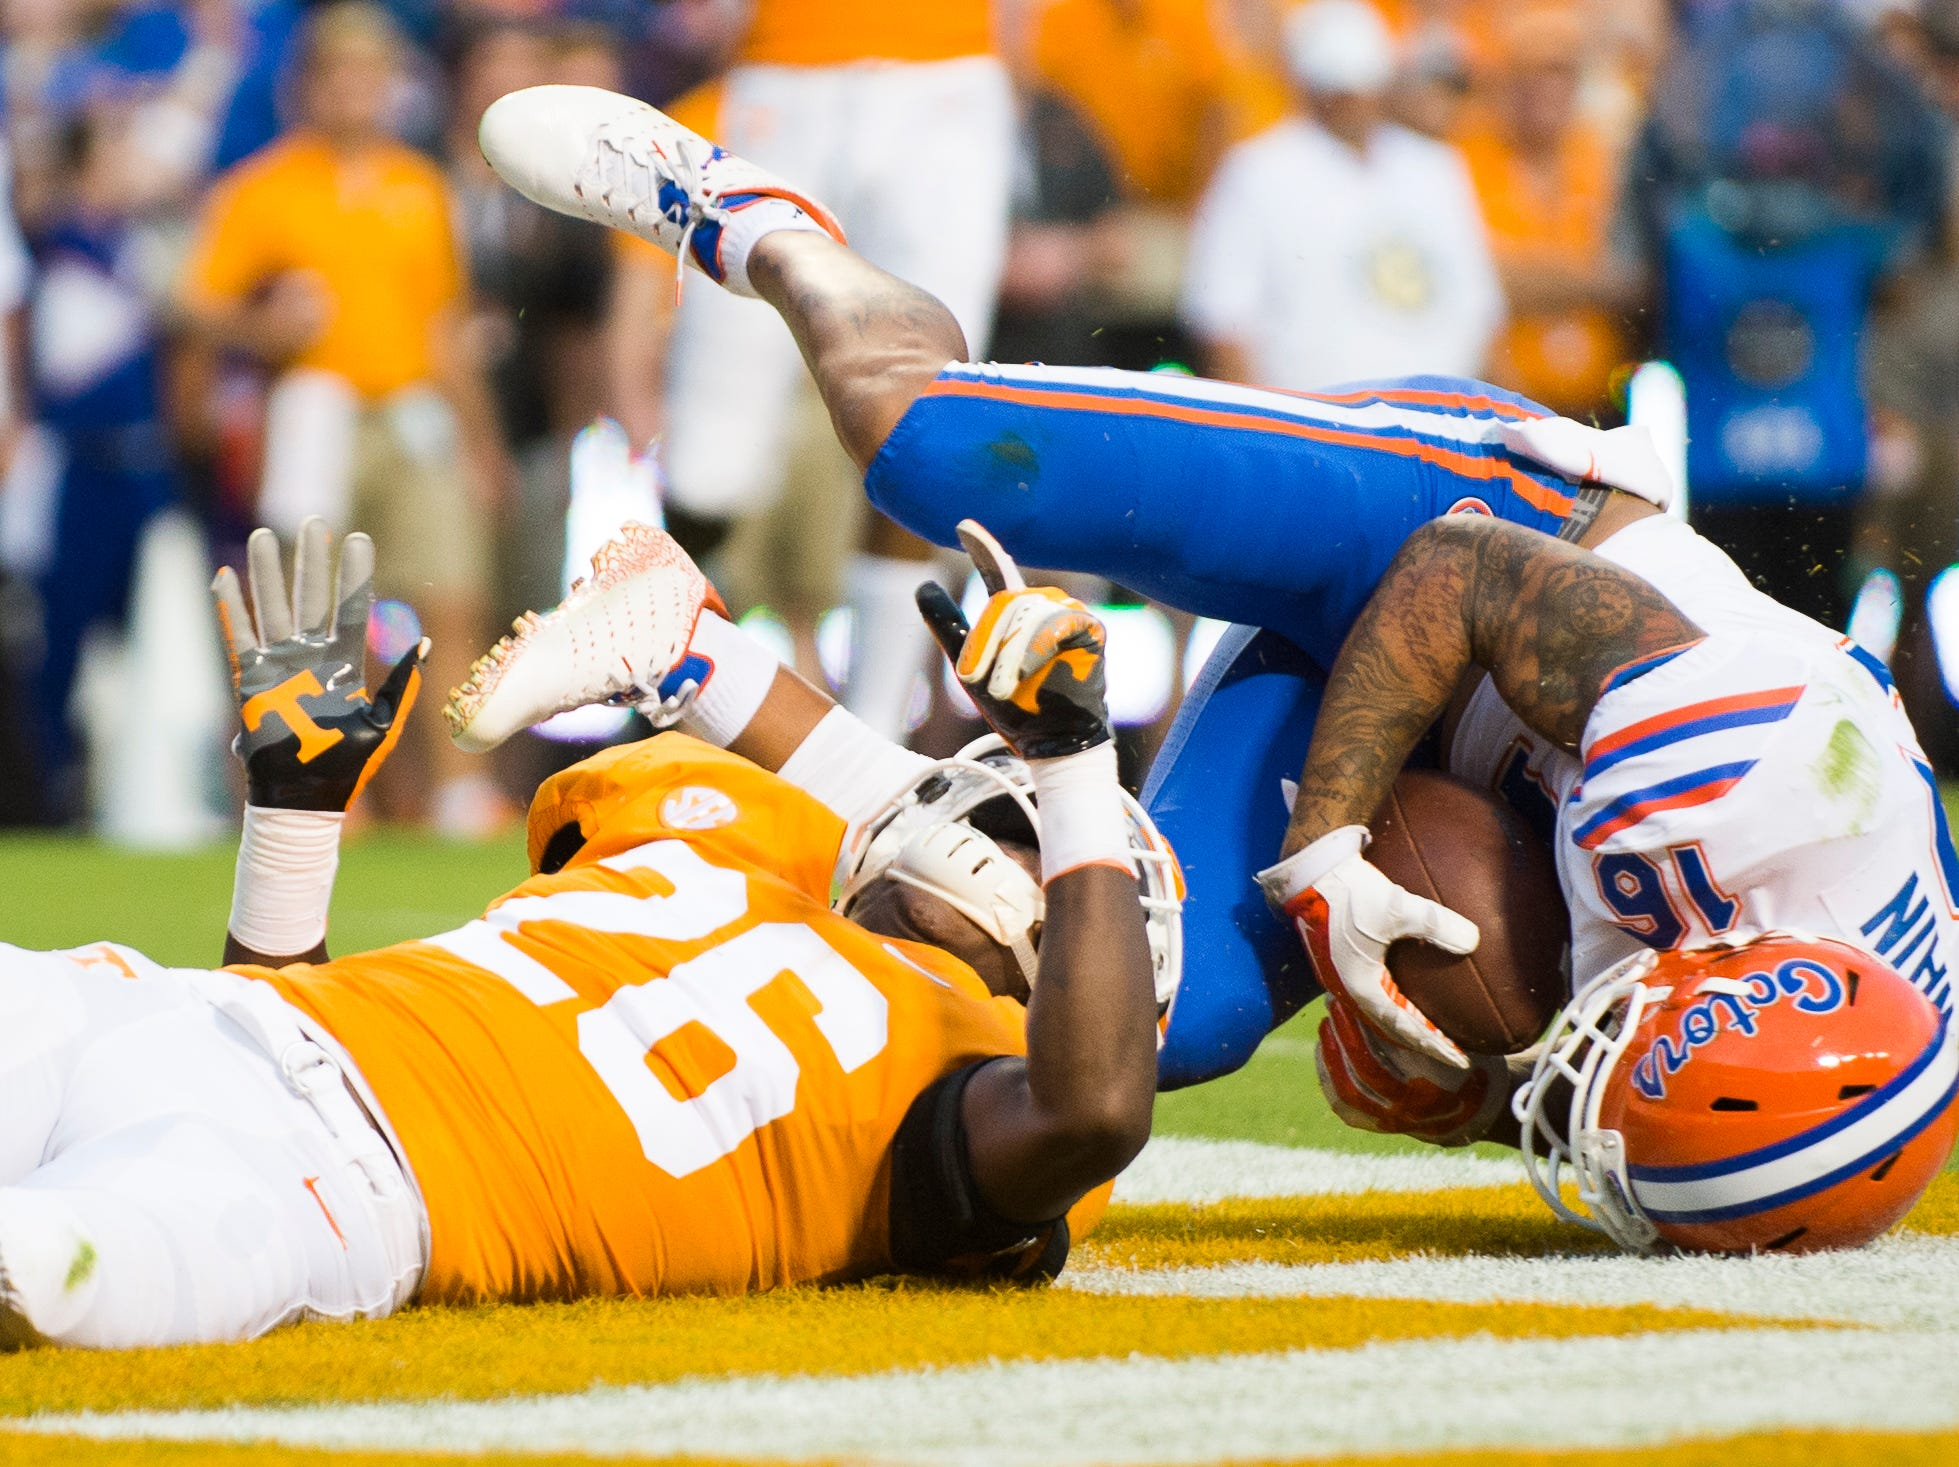 Florida wide receiver Freddie Swain (16) falls into the end zone for a touchdown attempt as ennessee defensive back Theo Jackson (26) defends during a game between Tennessee and Florida at Neyland Stadium in Knoxville, Tennessee on Saturday, September 22, 2018.